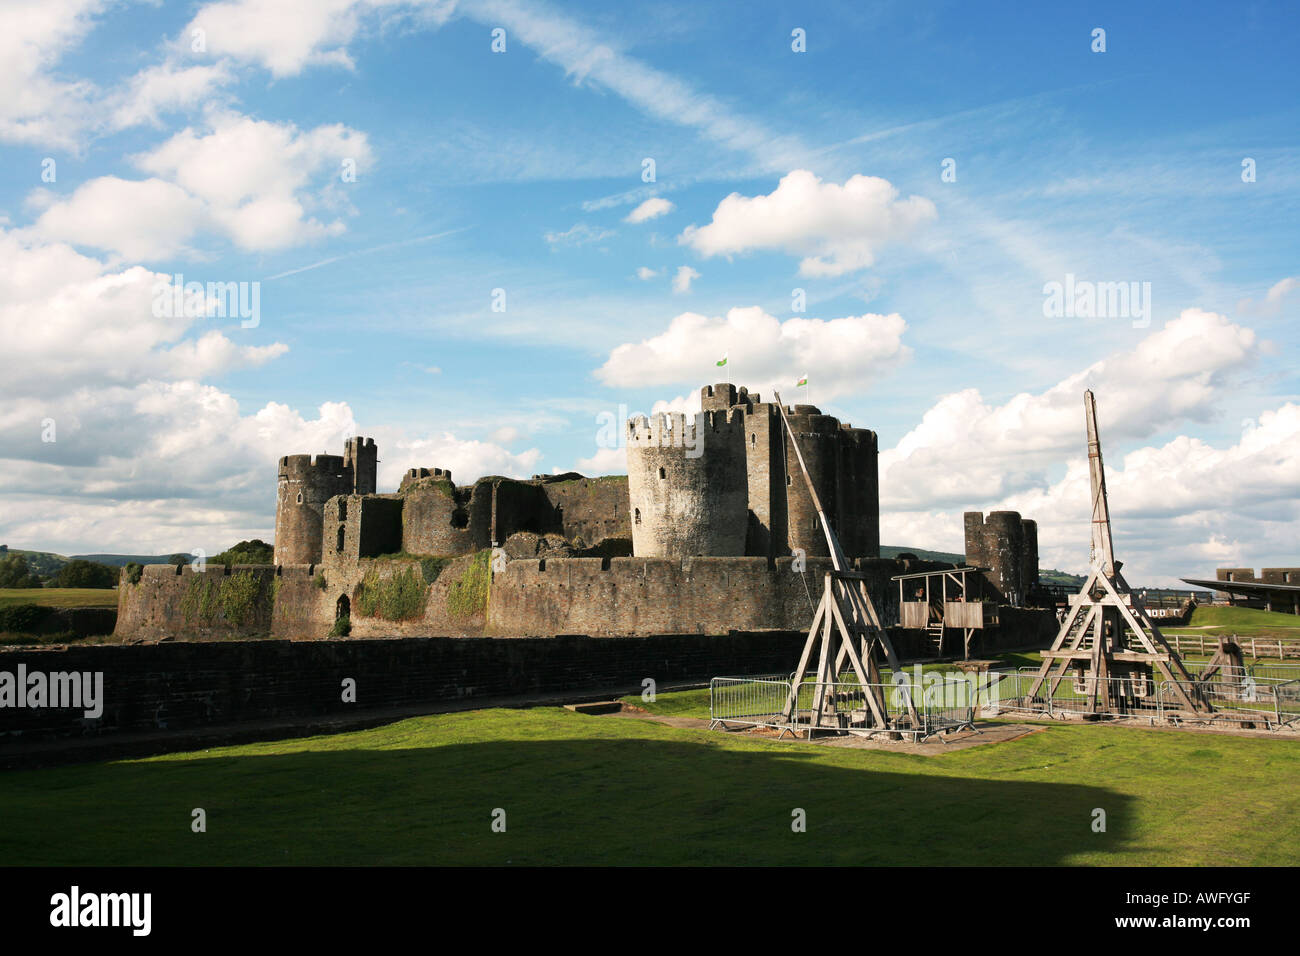 The grounds of Caerphilly Castle with ancient medieval ruins and wooden siege engines Glamorganshire South Wales UK - Stock Image